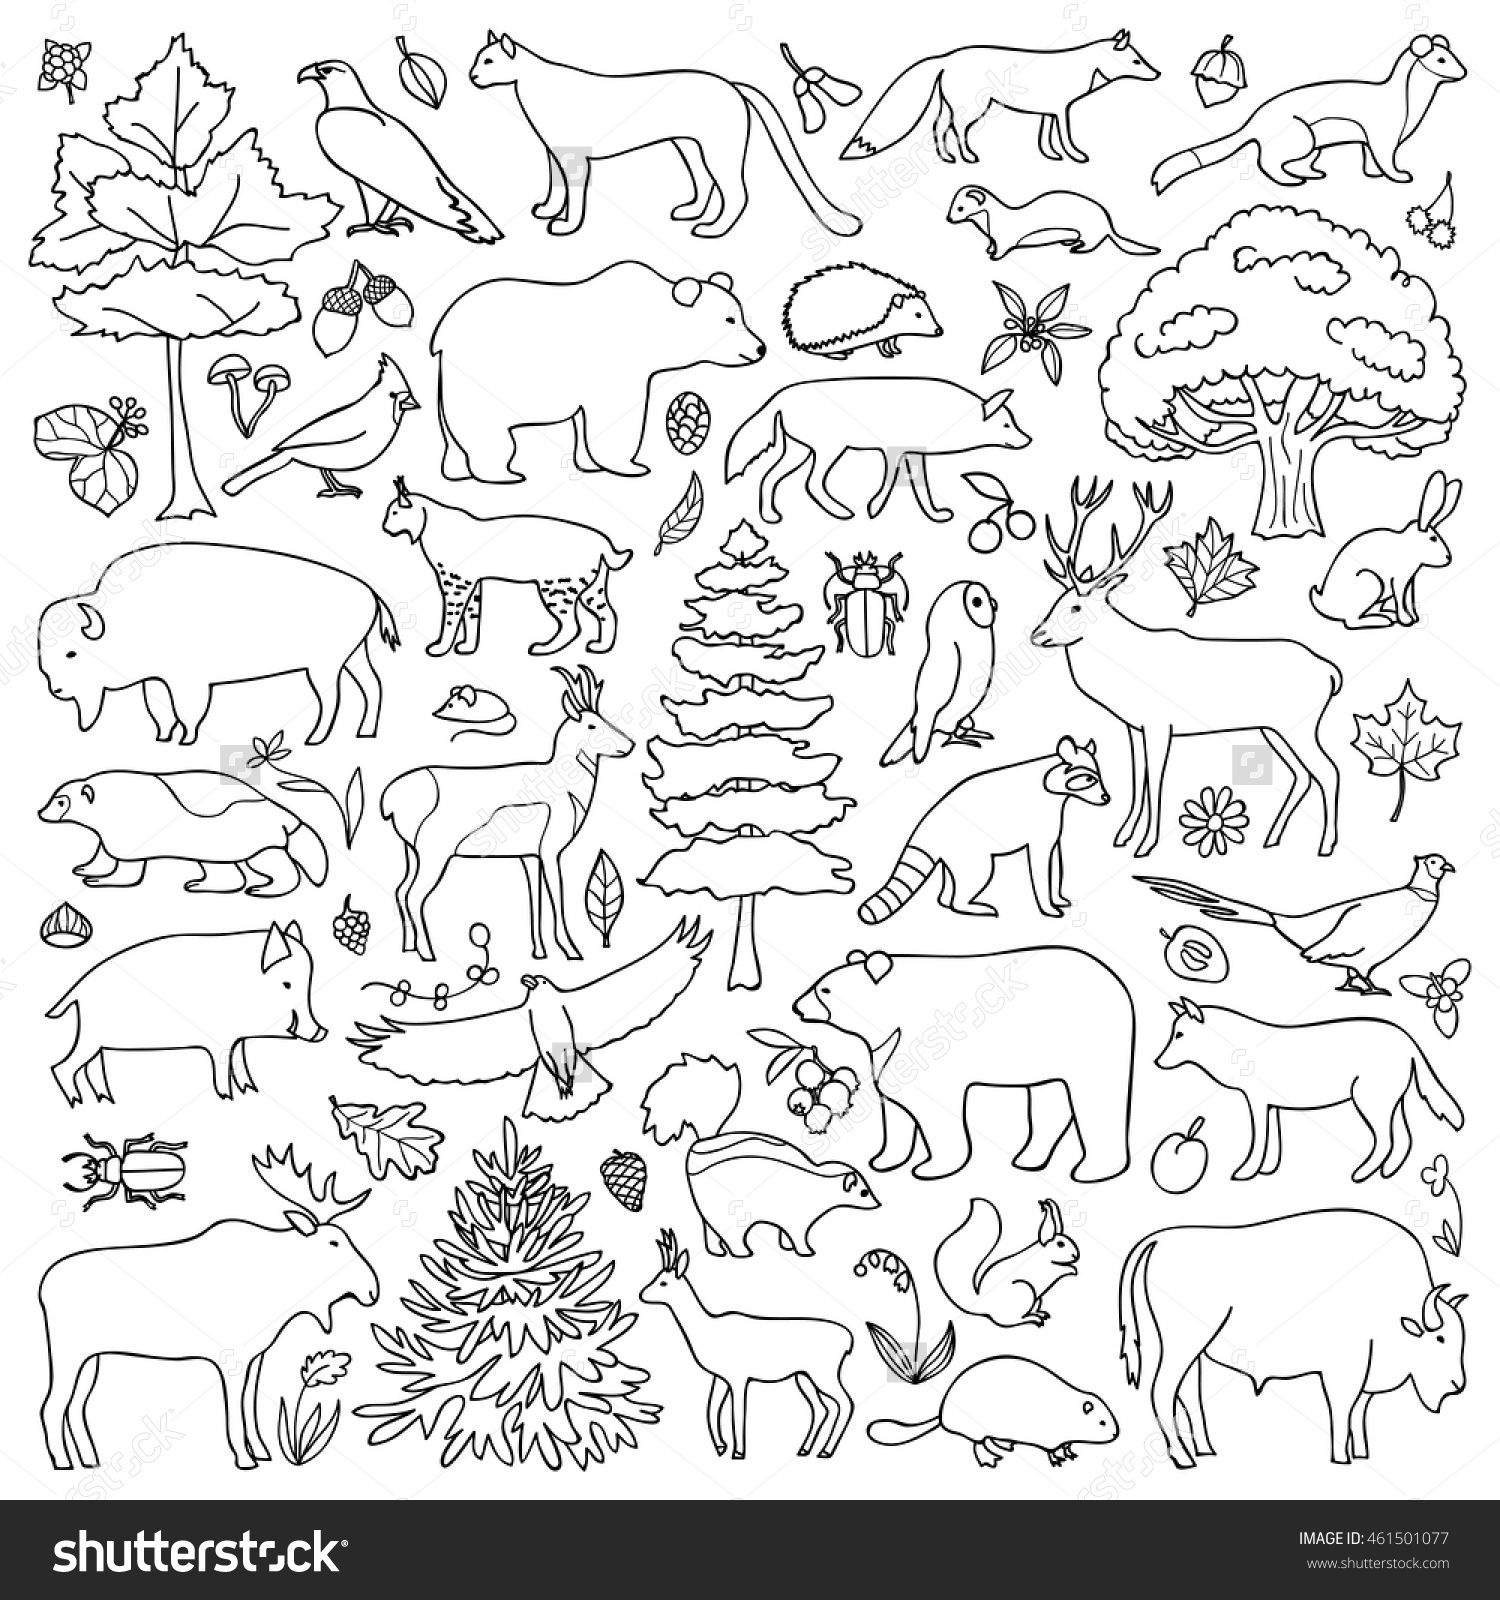 Forest Coloring Pages At Getcolorings